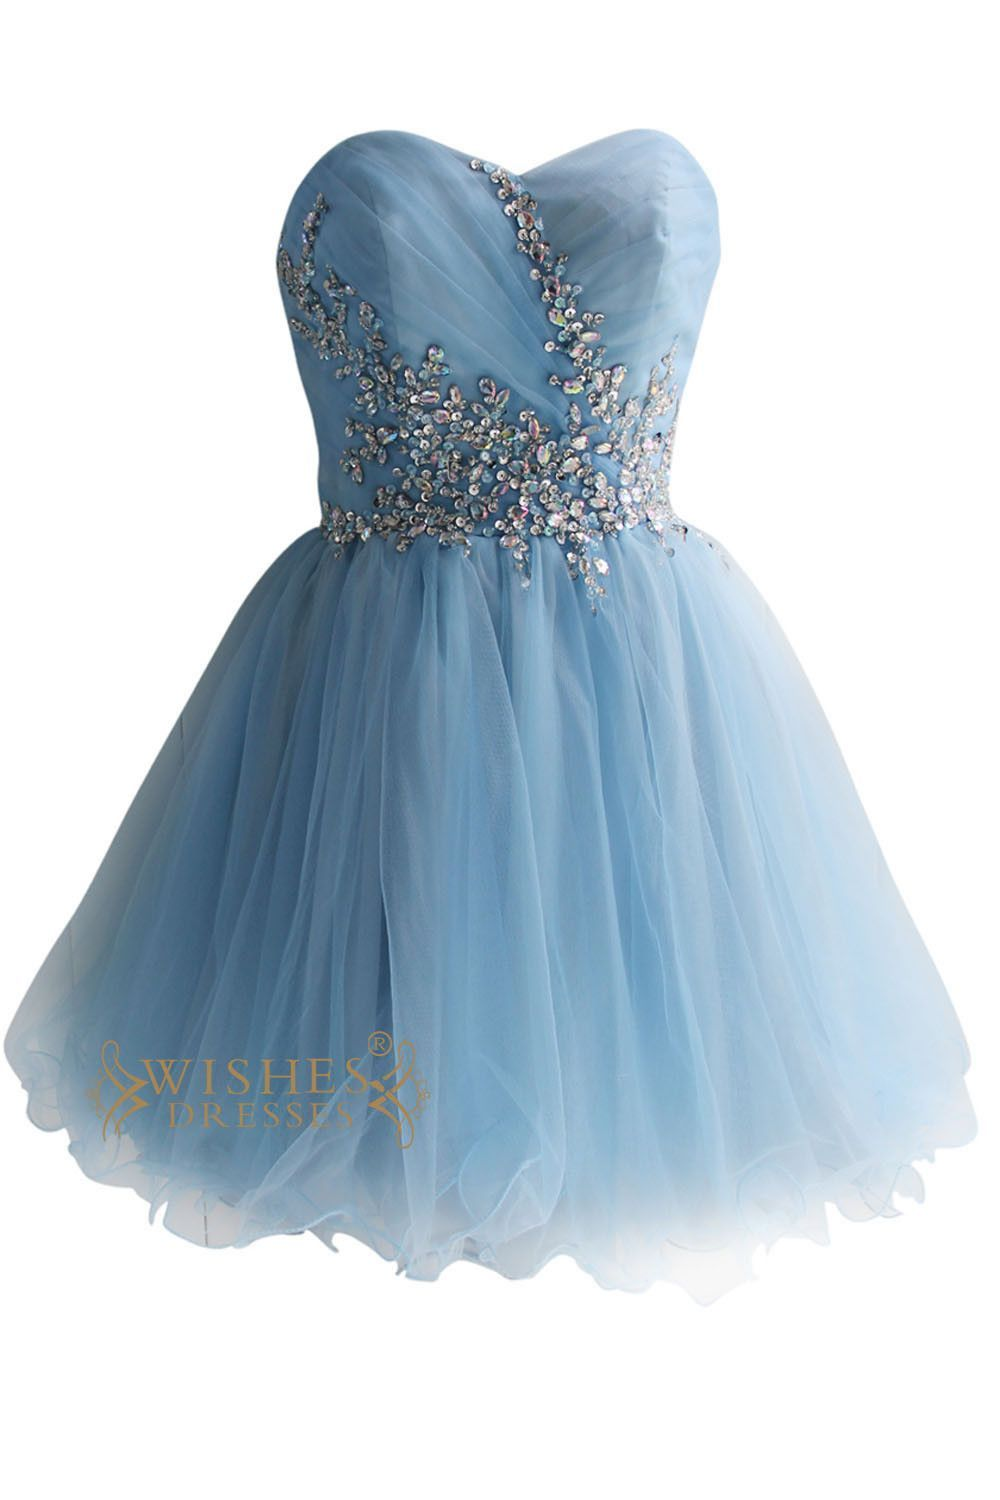 Sky Blue Tulle & Organza Short Prom Dresses AM124 | Short sequin ...